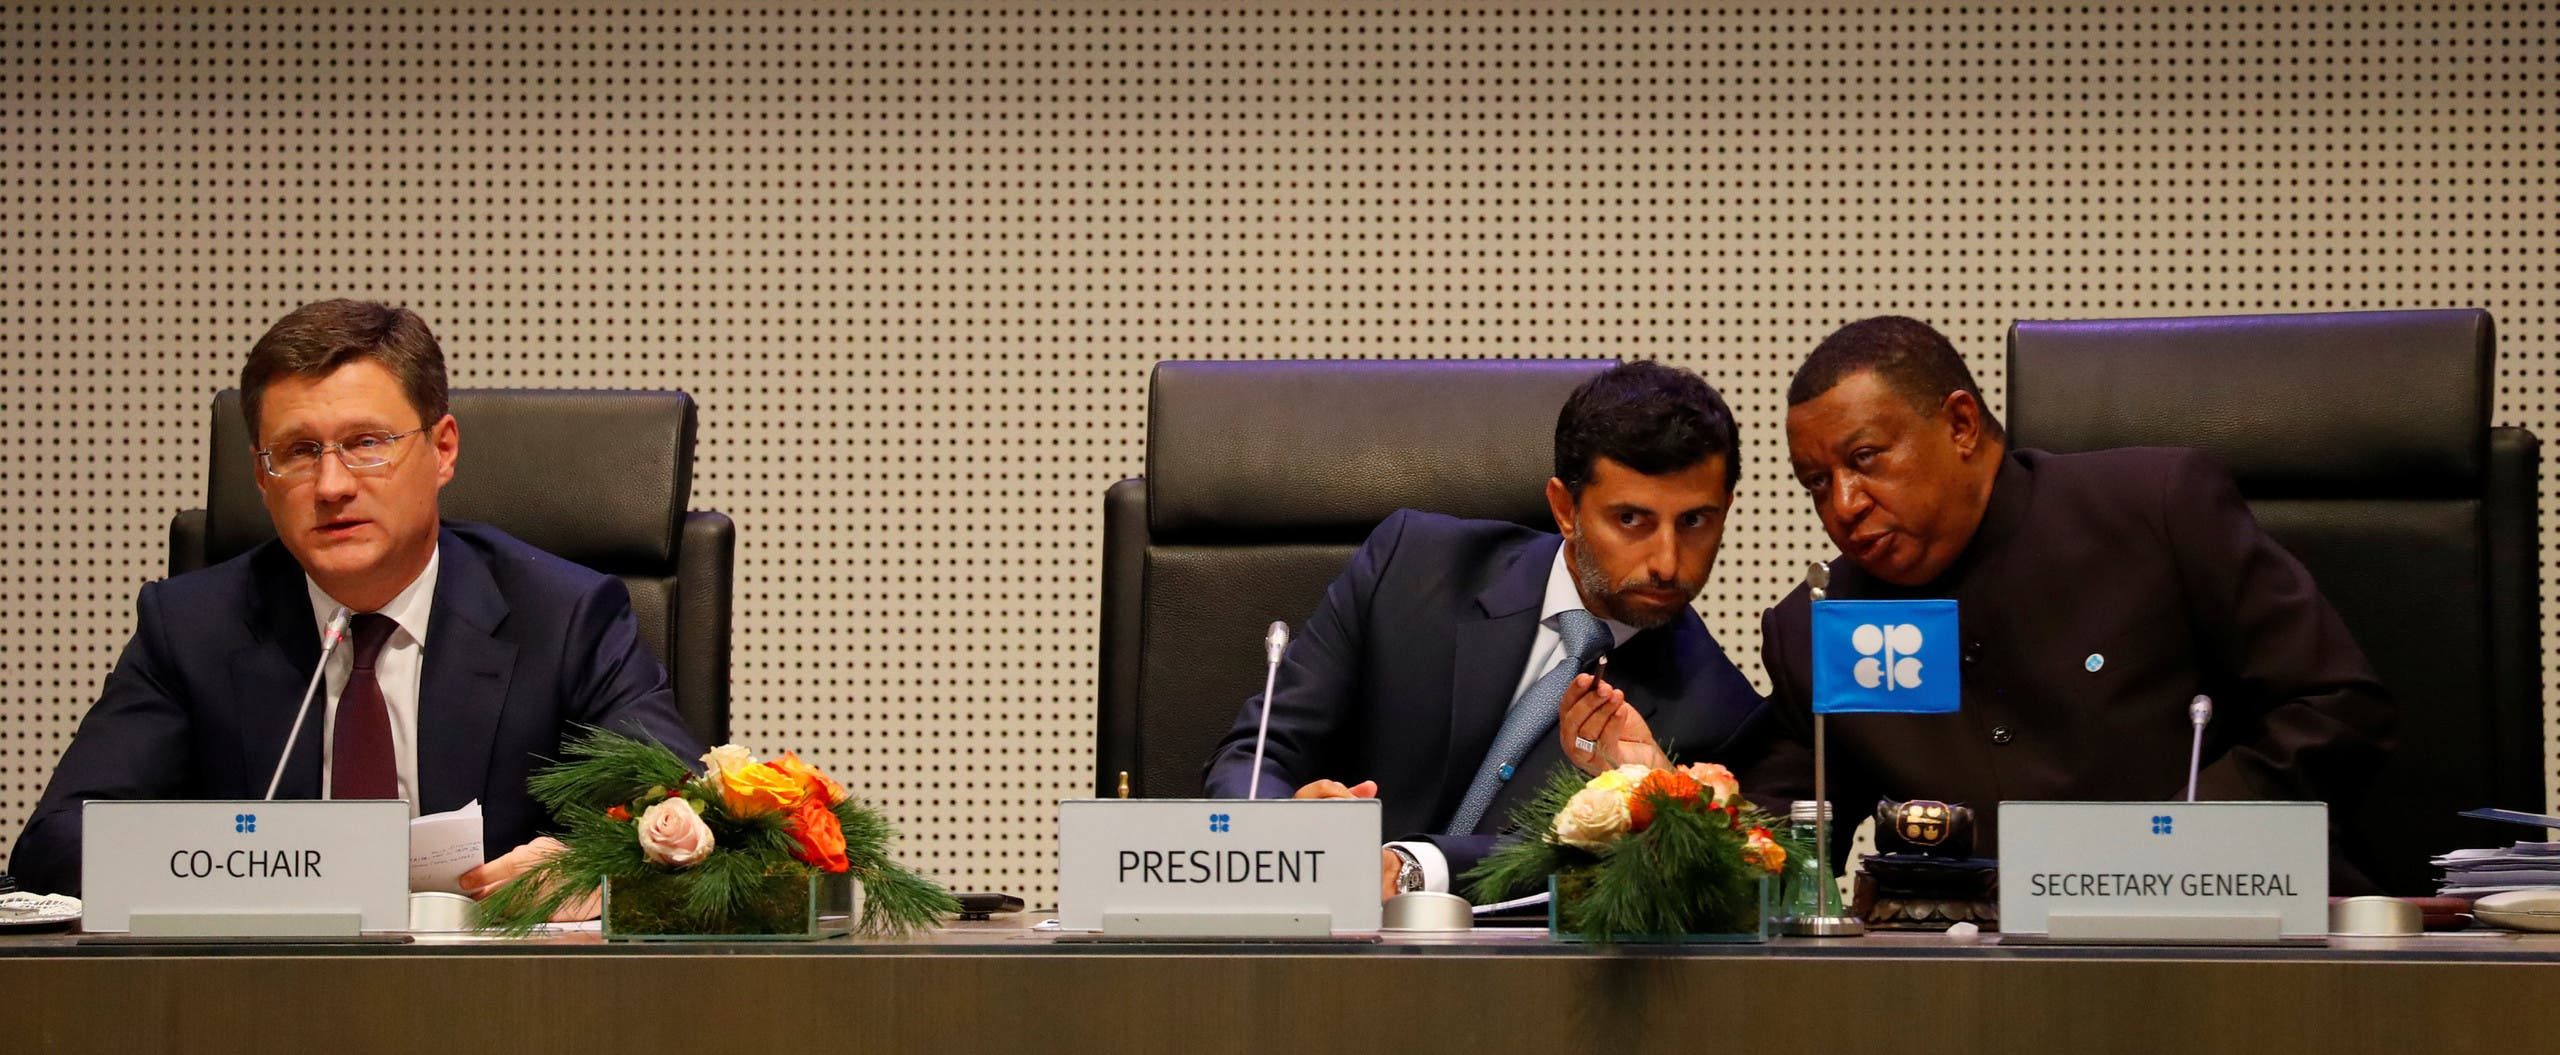 Russian Energy Minister Alexander Novak and UAE's Oil Minister Suhail Mohamed Al Mazrouei and OPEC Secretary General Mohammad Barkindo attend an Opec meeting in Vienna on December 7, 2018. (REuters)